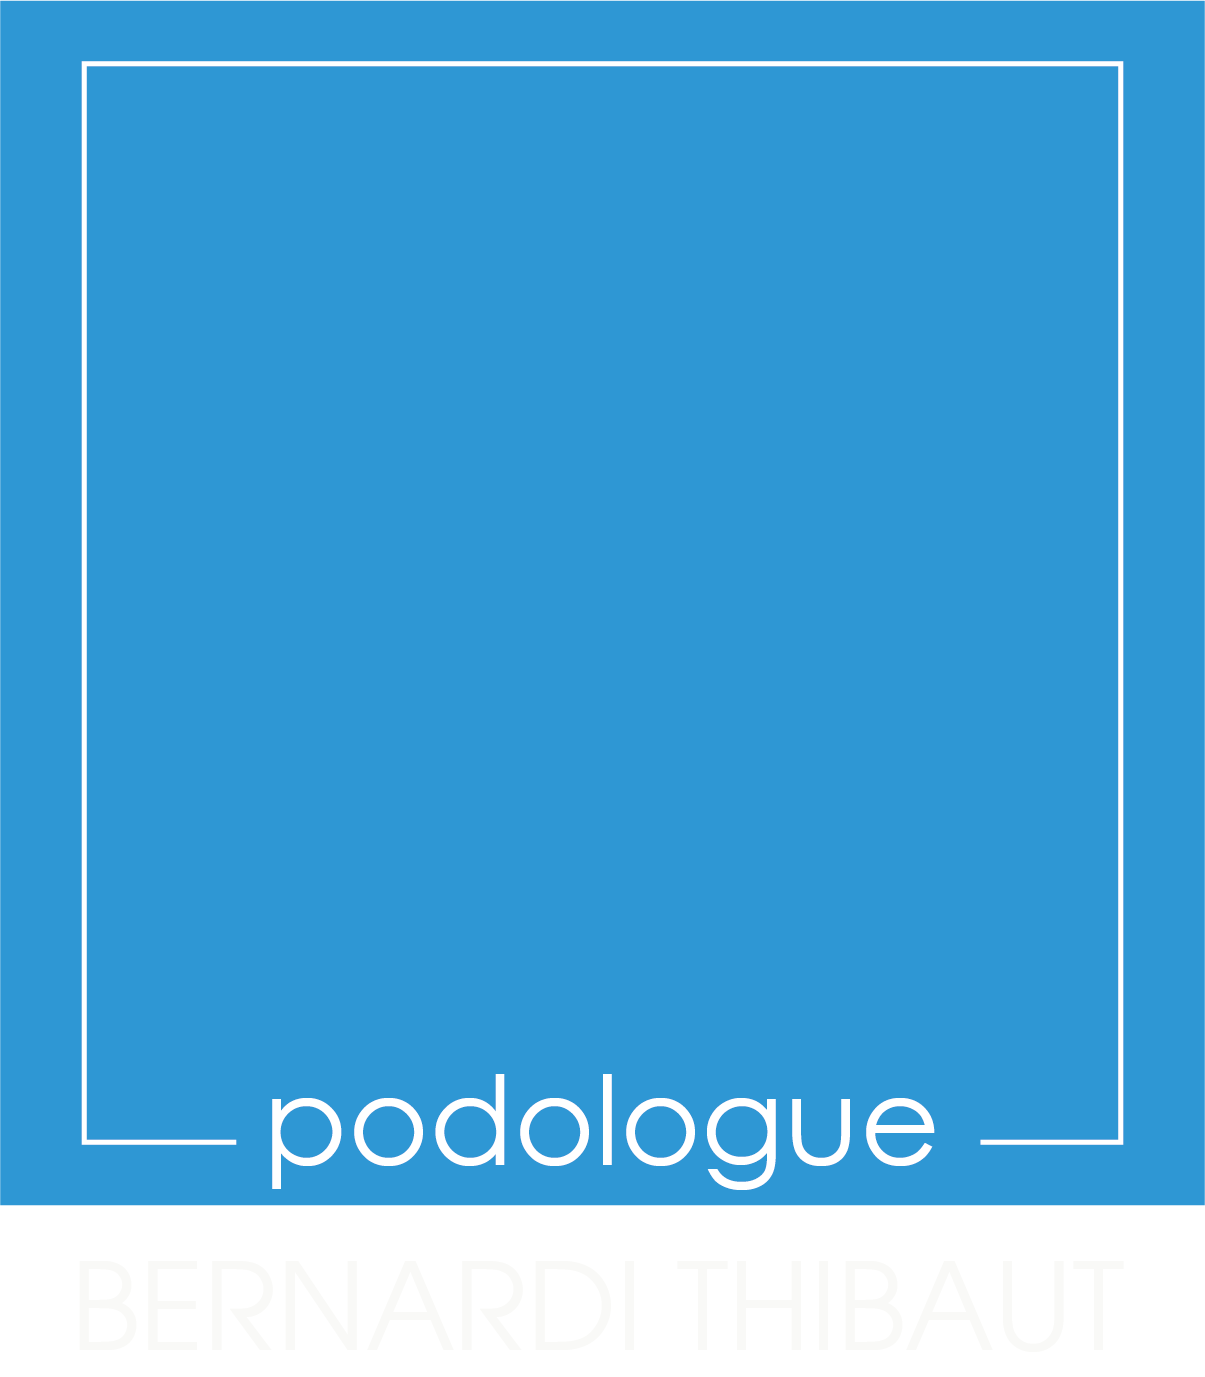 pedicure-podologue Antibes-semelles orthopediques Juan-les-Pins-pedicure Vallauris-podologue Cannes